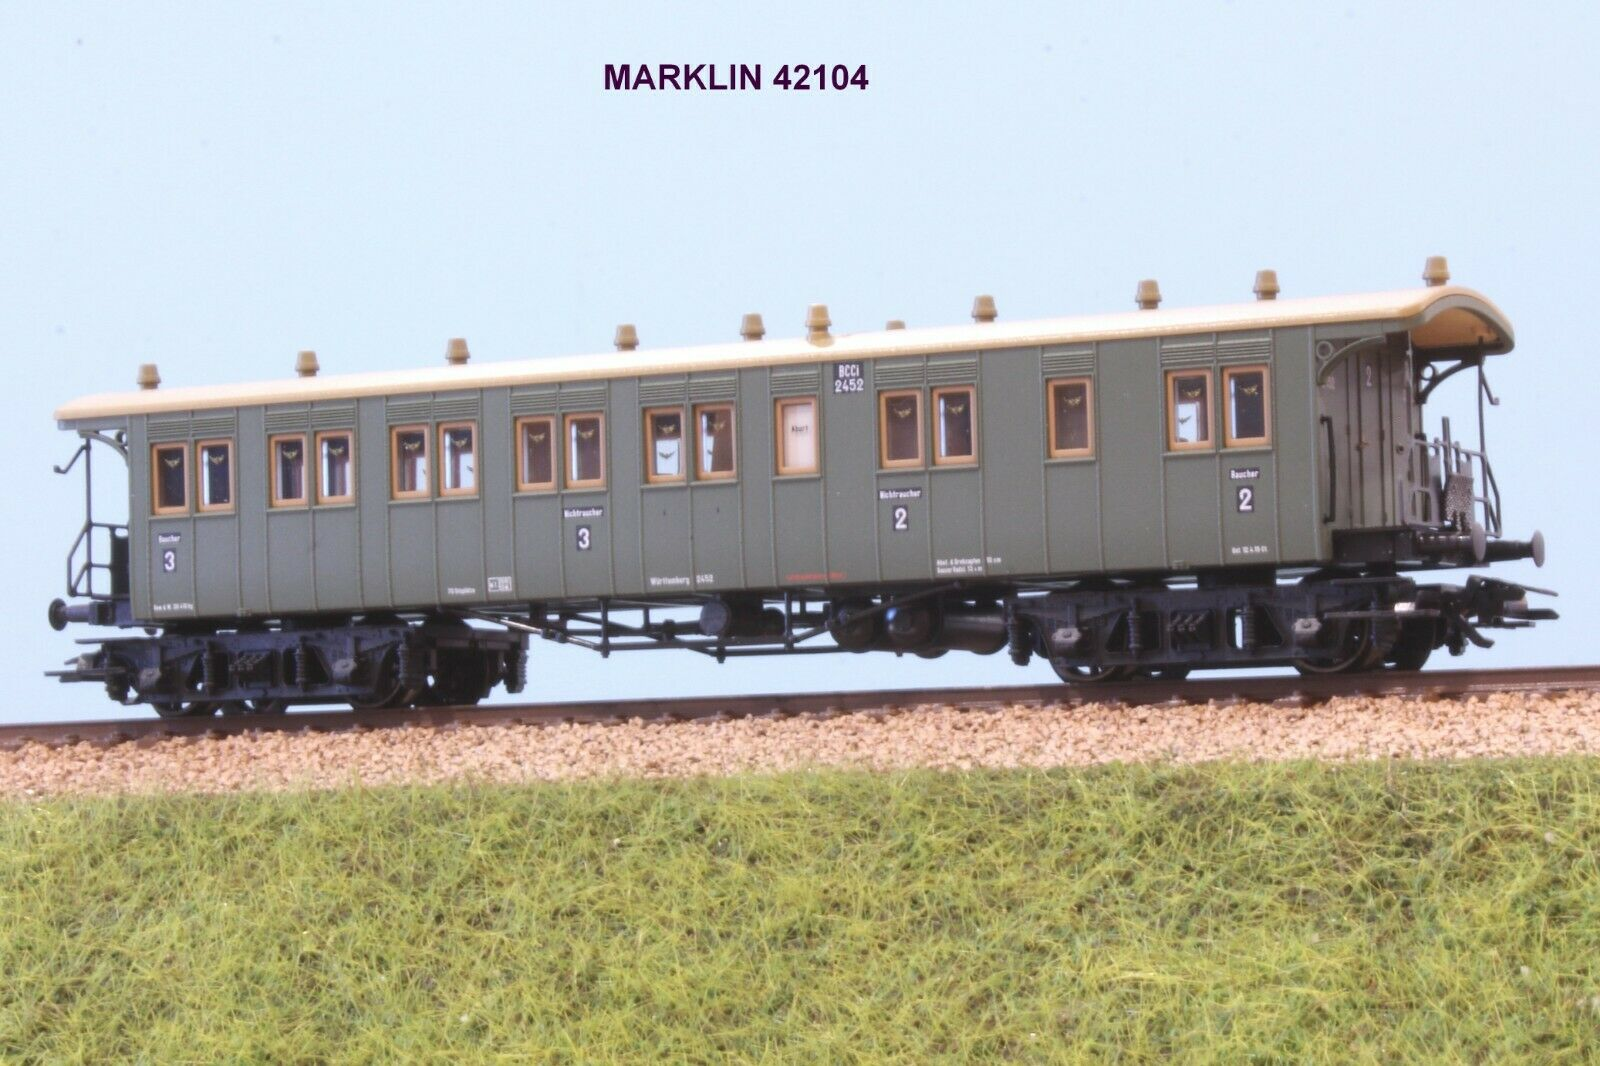 Marklin 42104 carriage to Carts 3 CL FERROVI a rttemberg EP. the